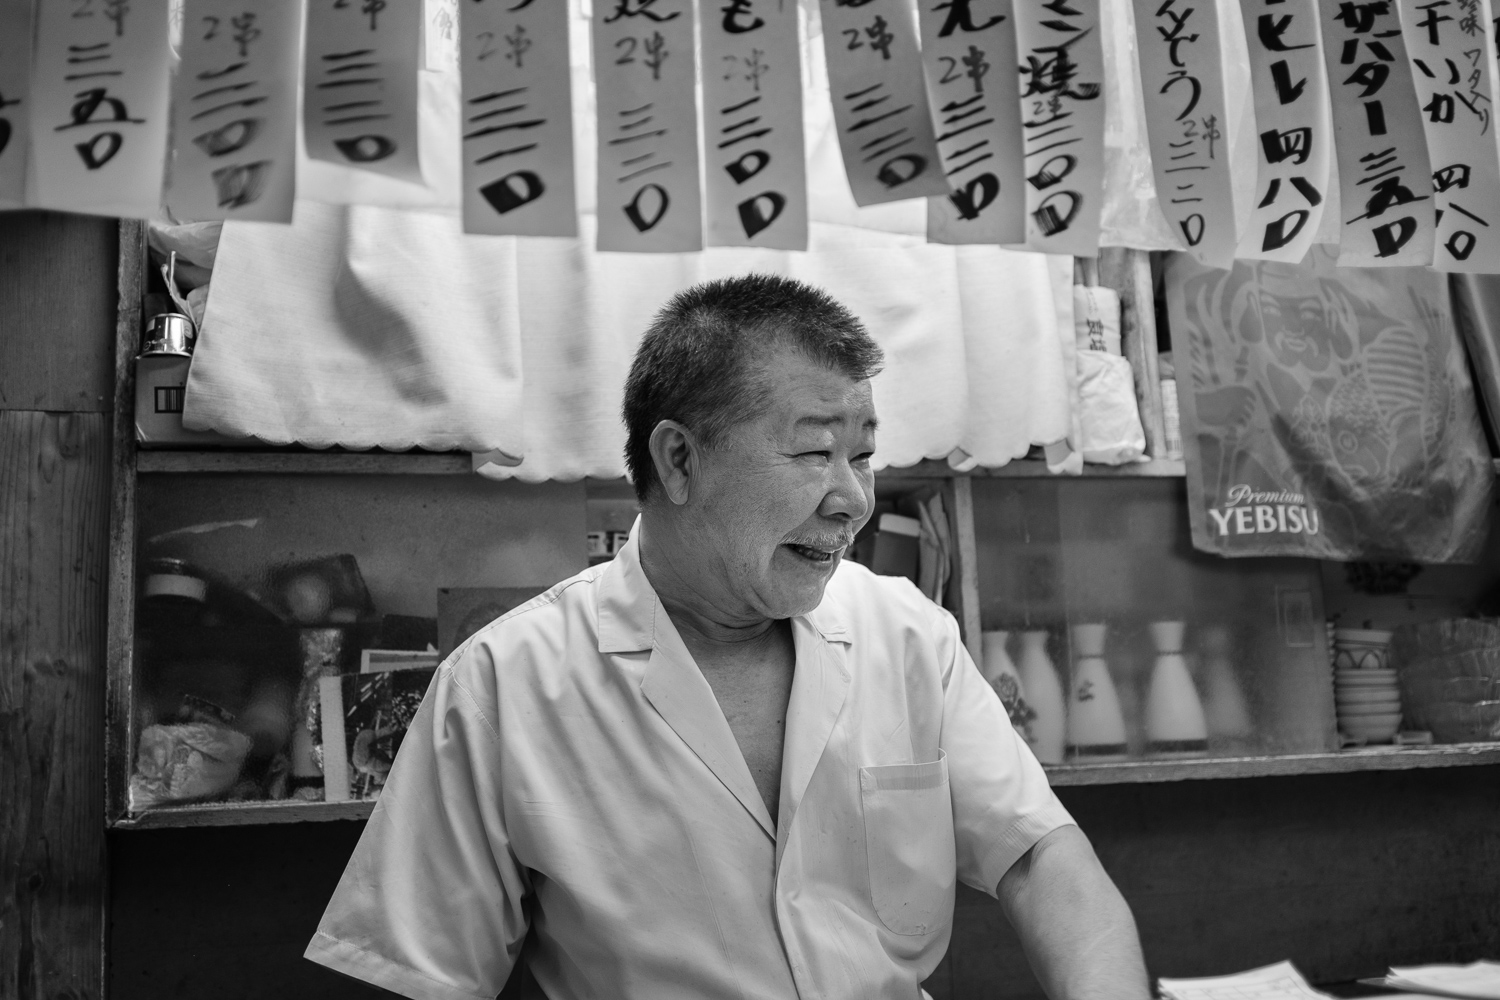 A yakitori chef smiles behind the counter of his restaurant in Shibuya, Tokyo, Japan